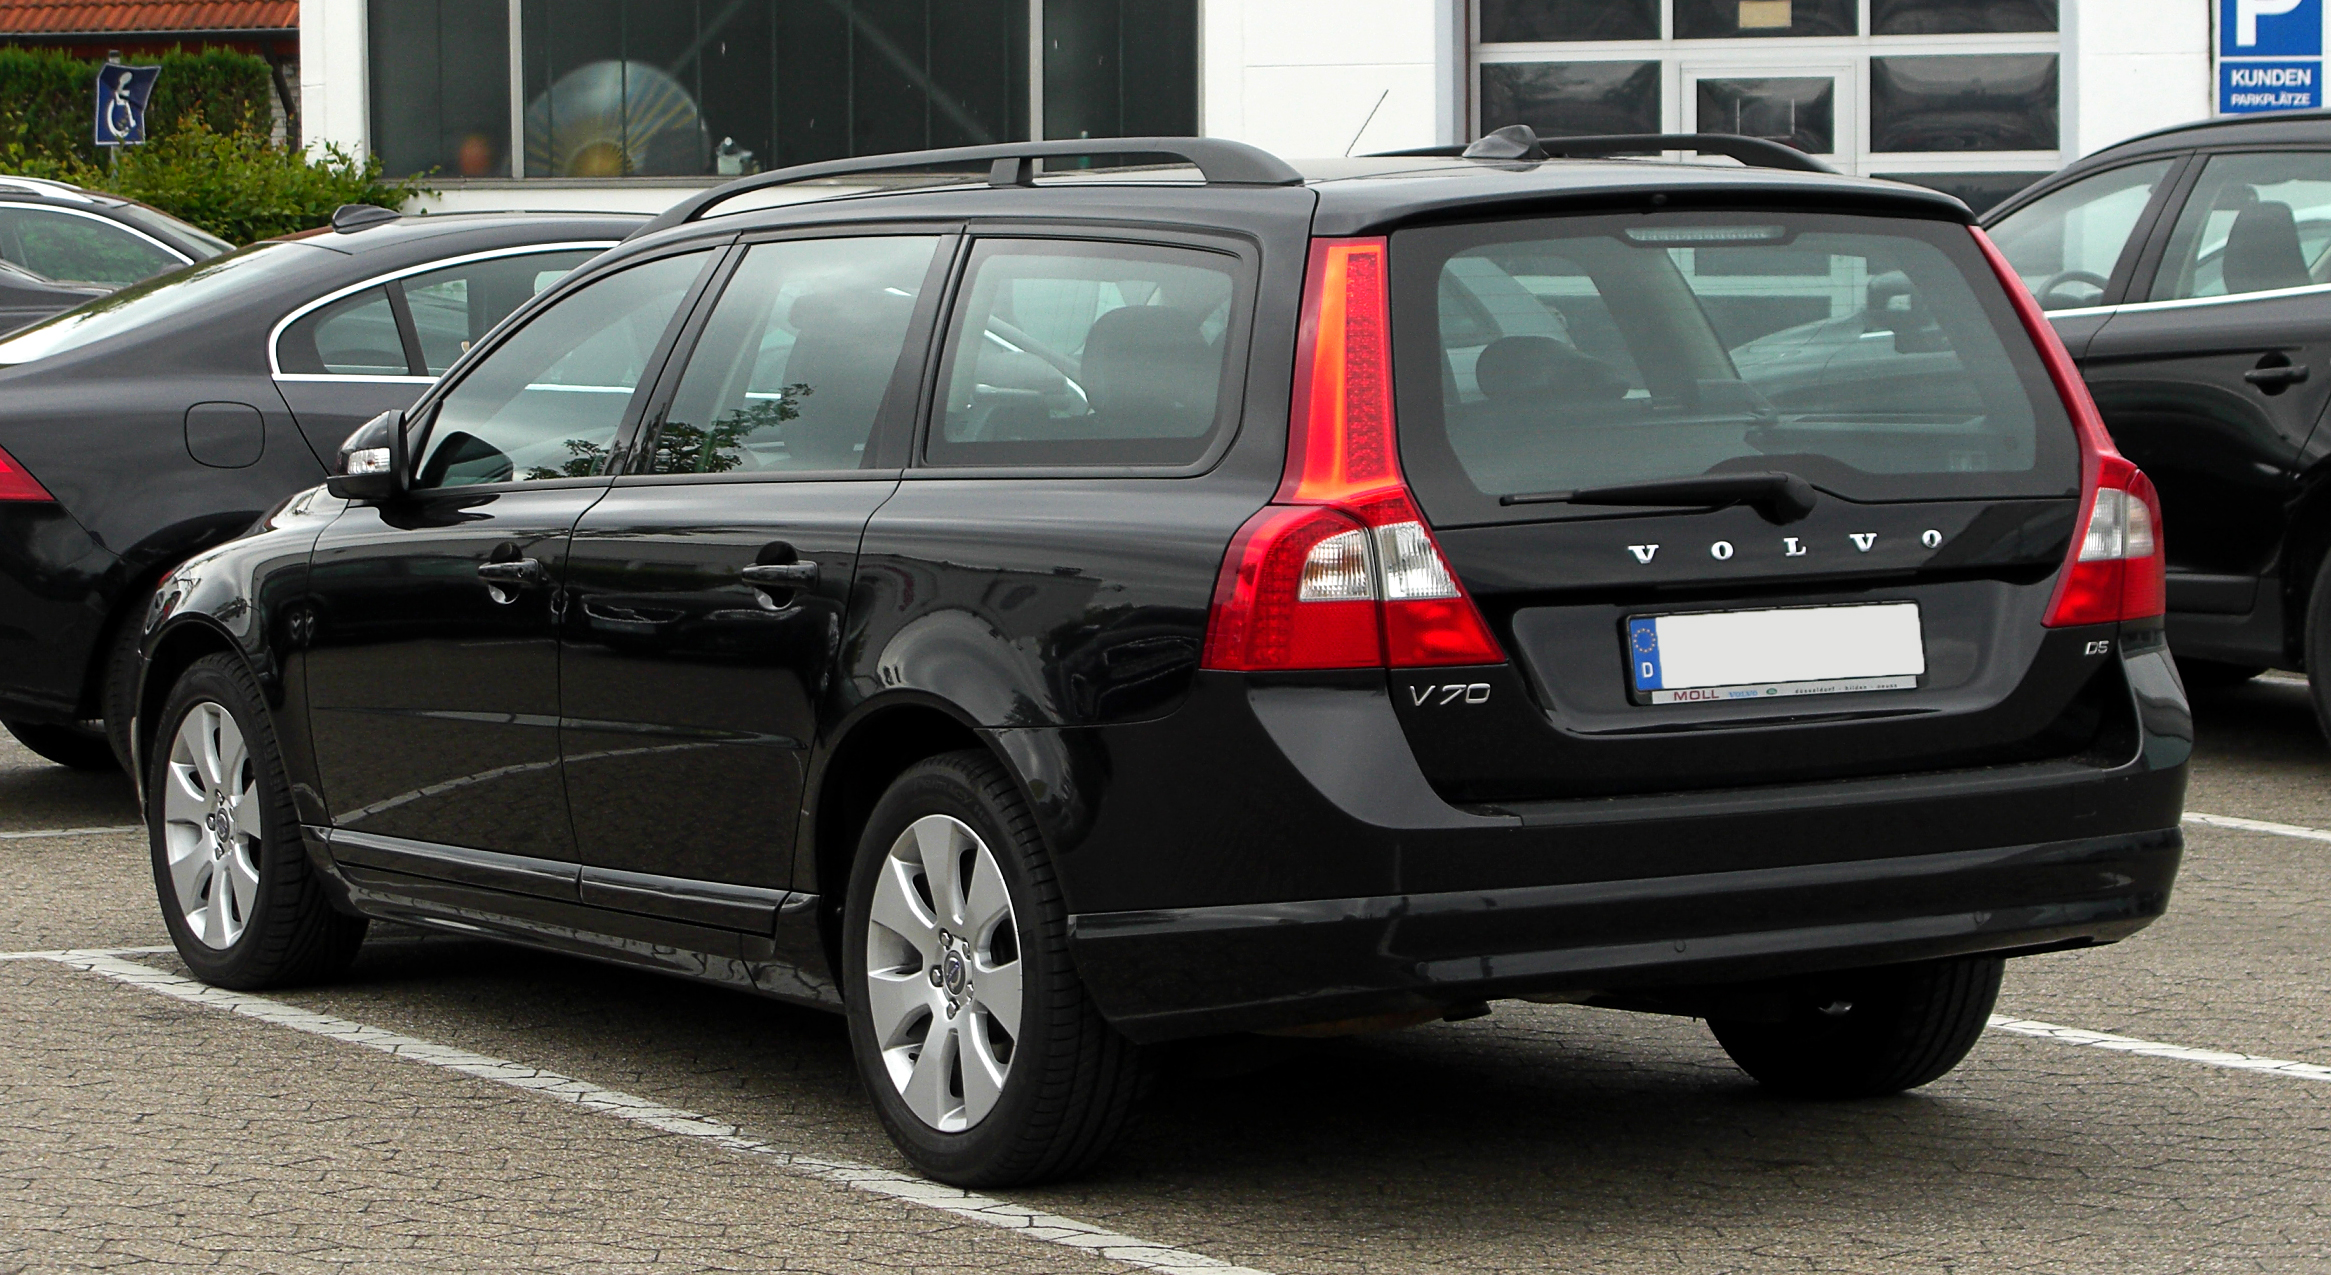 plik volvo v70 d5 iii heckansicht 28 mai 2011 wikipedia wolna encyklopedia. Black Bedroom Furniture Sets. Home Design Ideas